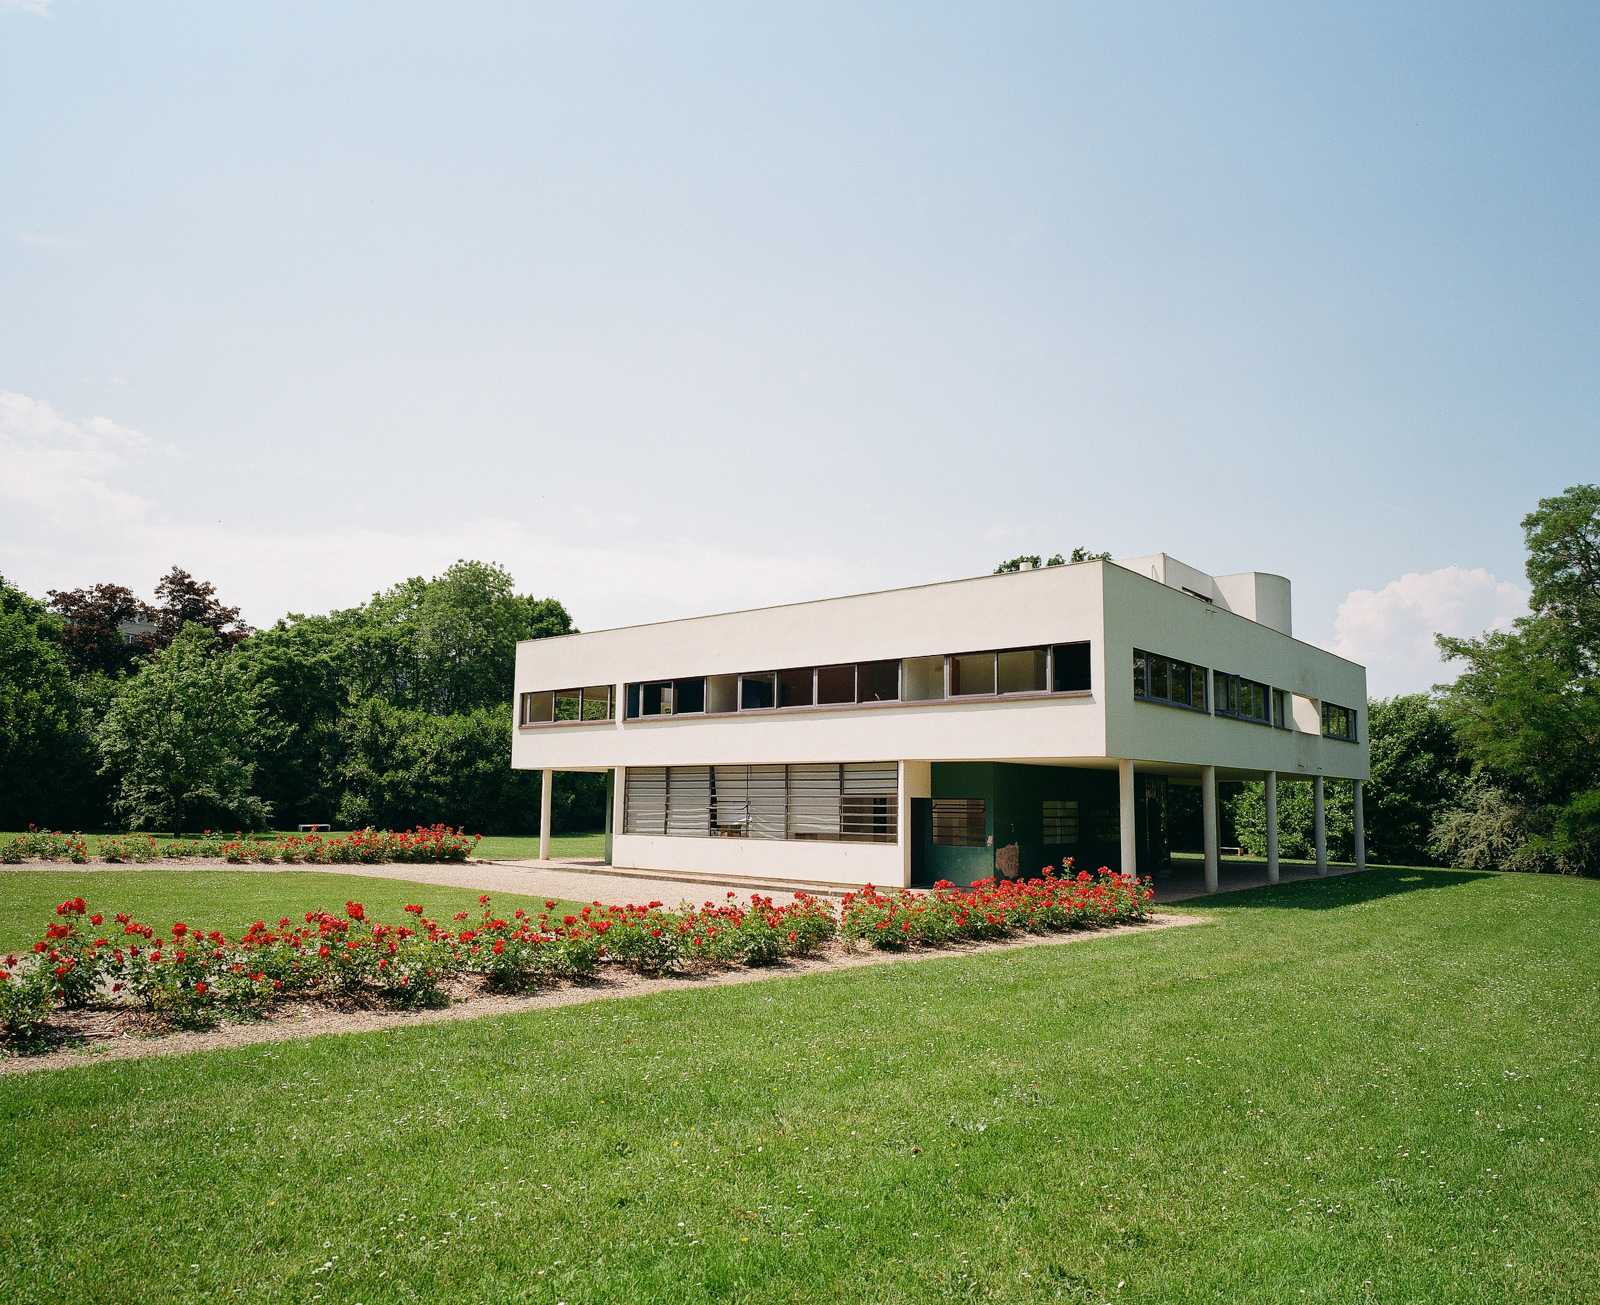 Villa Savoye by Le Corbusier, designed in 1920s and still modern today.